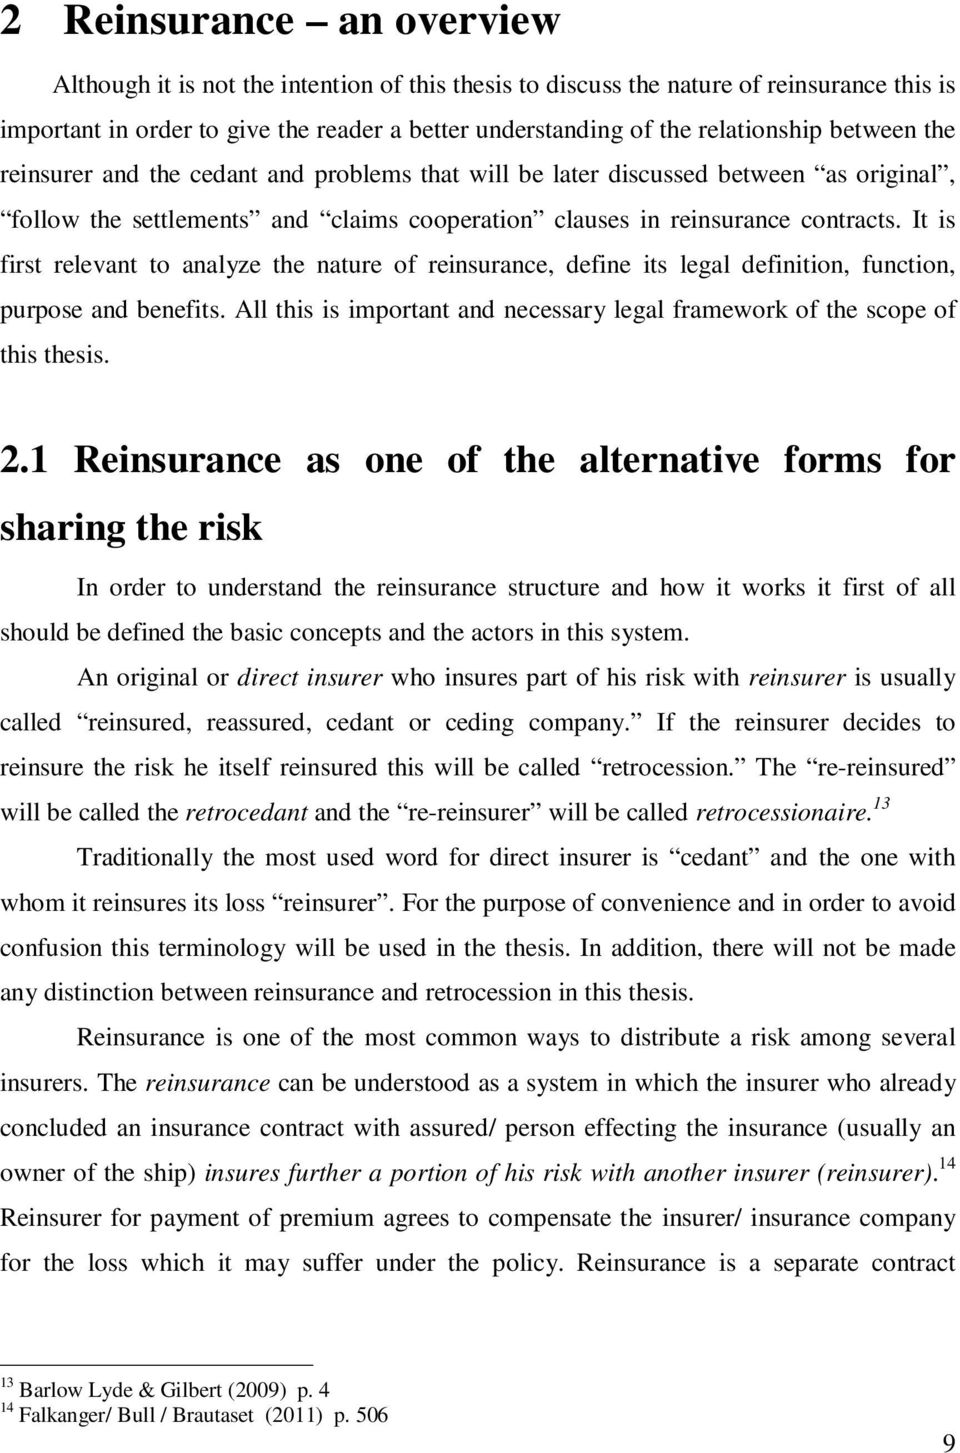 It is first relevant to analyze the nature of reinsurance, define its legal definition, function, purpose and benefits. All this is important and necessary legal framework of the scope of this thesis.